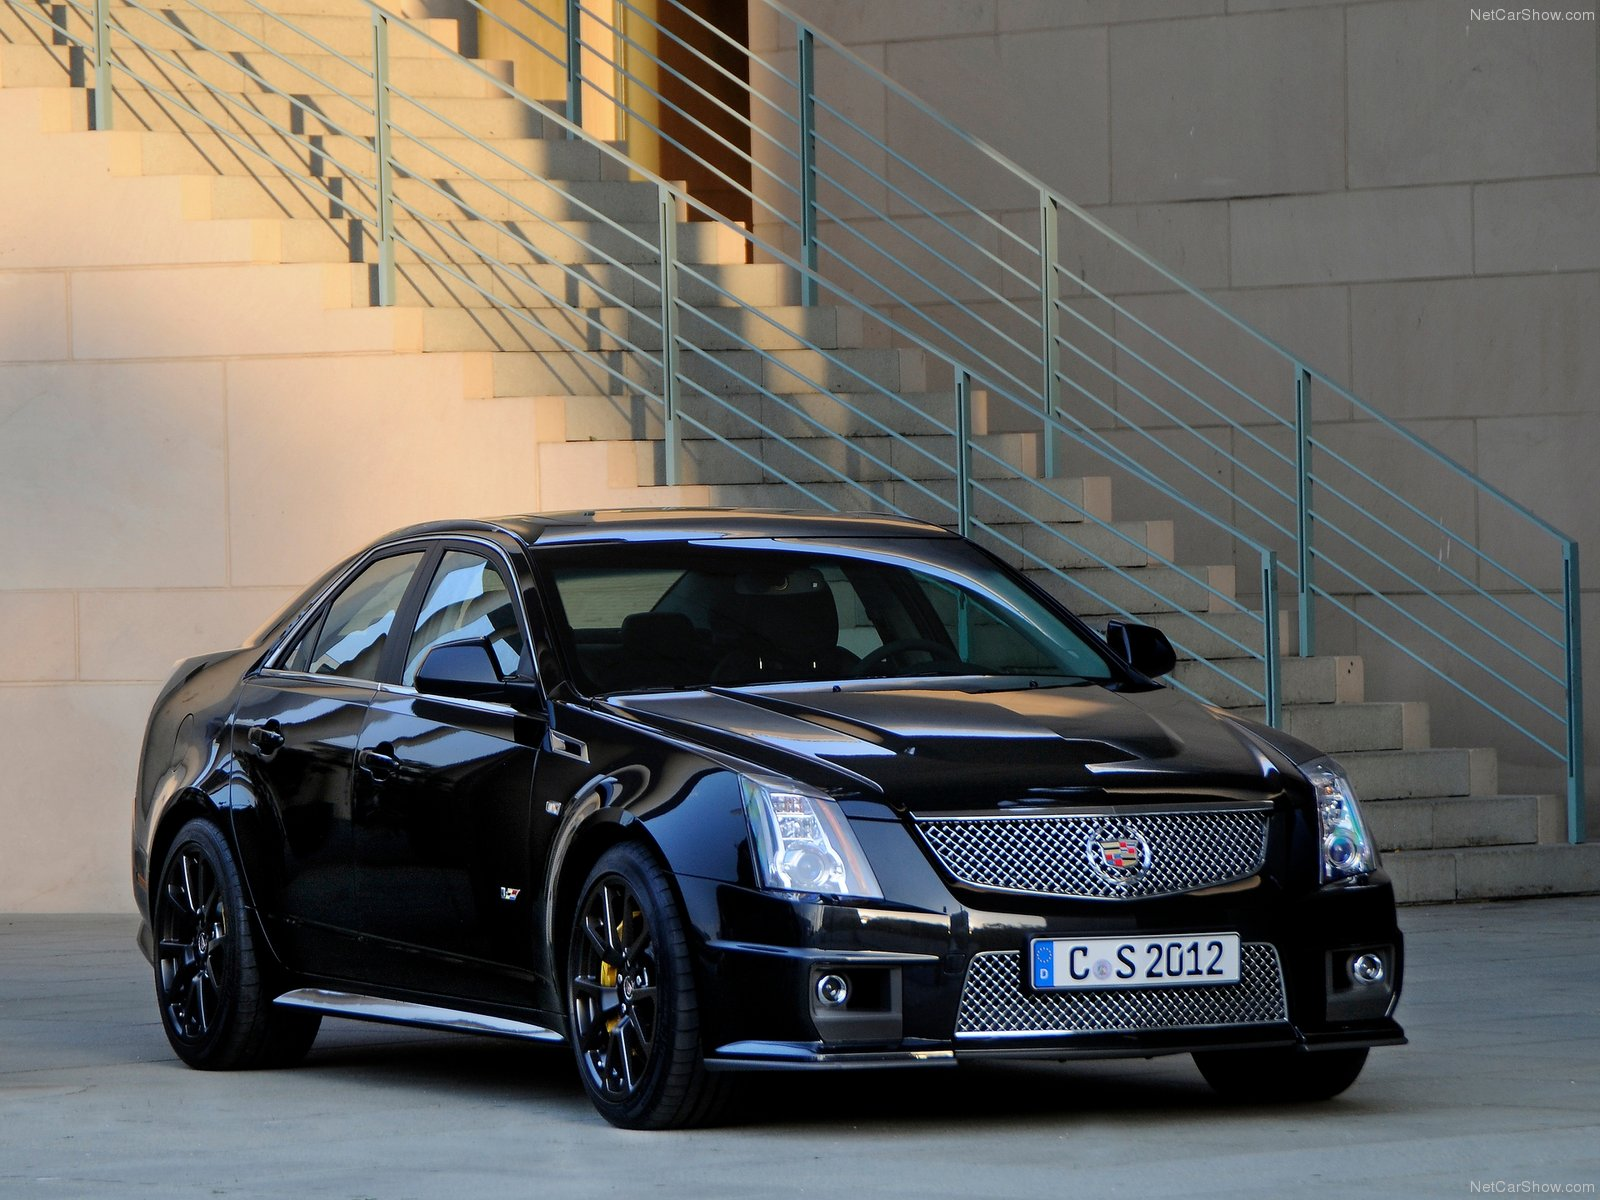 tuning cadillac cts v sedan 2010 online accessories and spare parts for tuning cadillac cts v. Black Bedroom Furniture Sets. Home Design Ideas